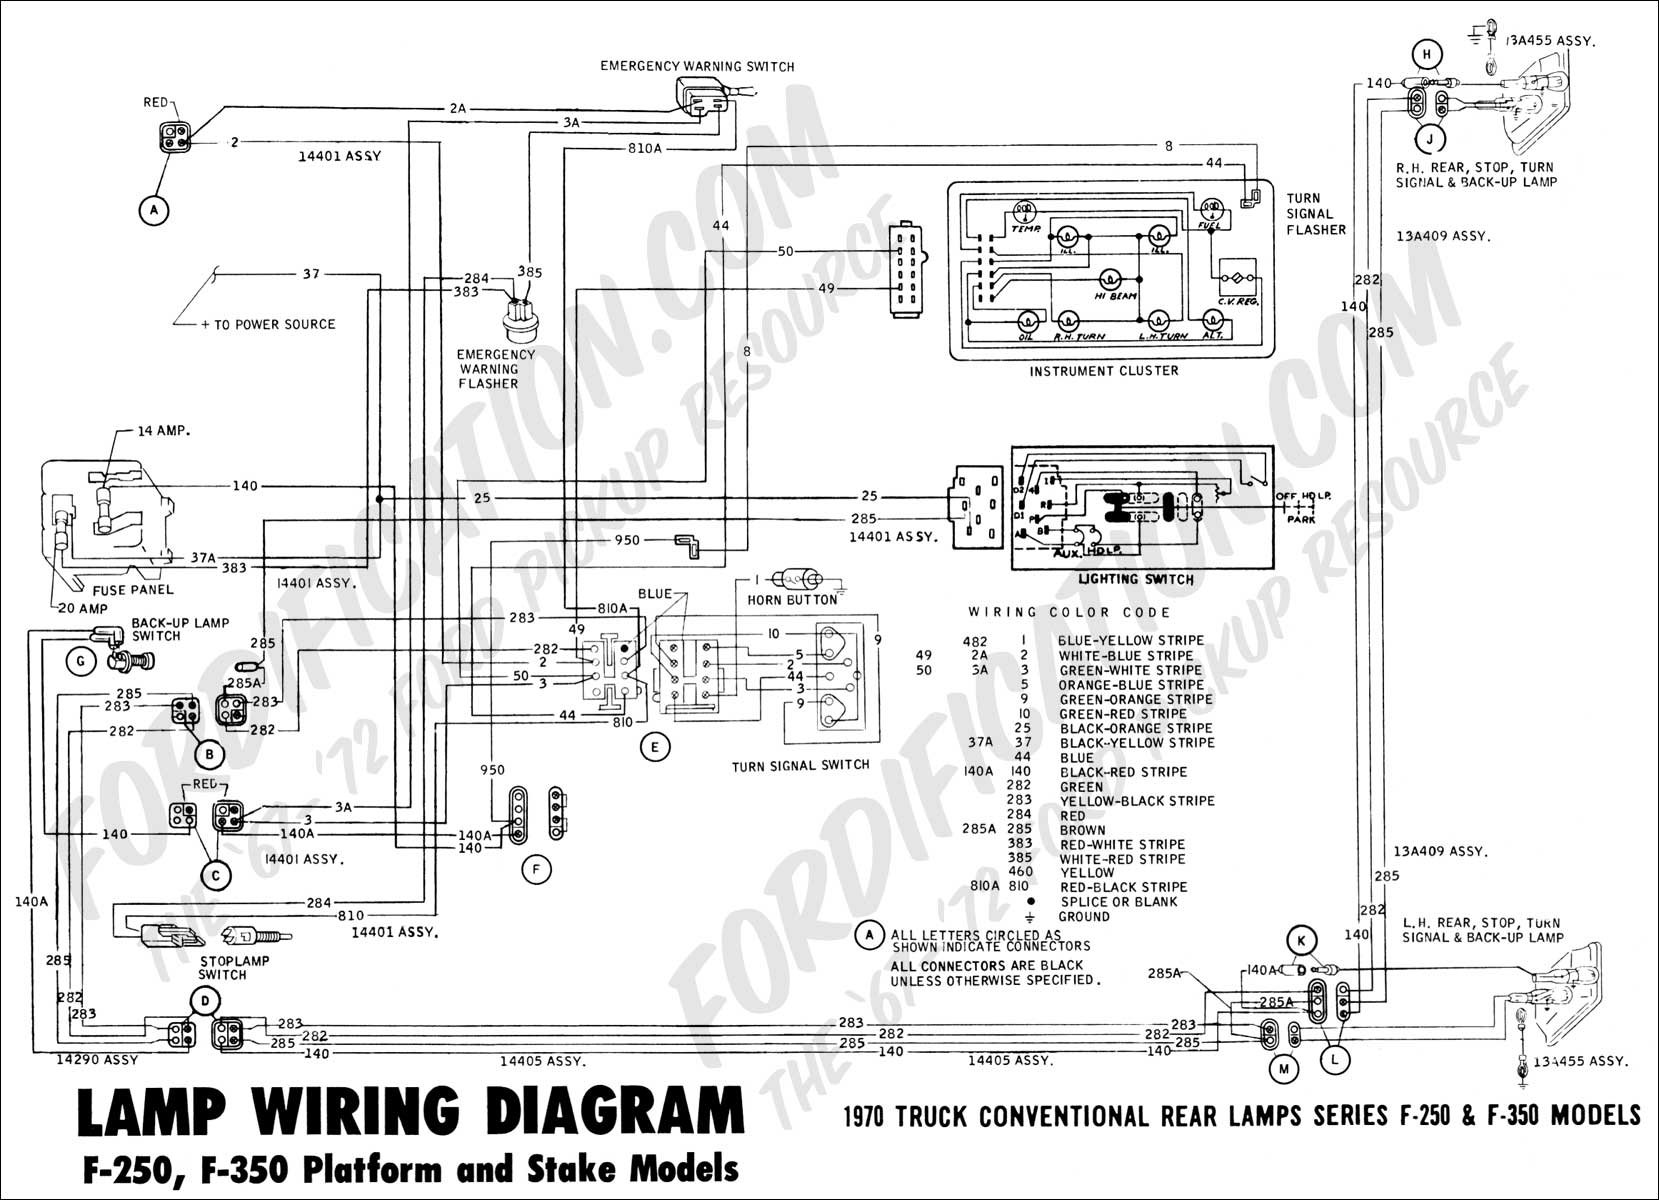 wiring diagram for 1969 ford f 350 truck ford truck technical drawings and schematics - section h ... 1969 ford f 350 wiring schematic #10